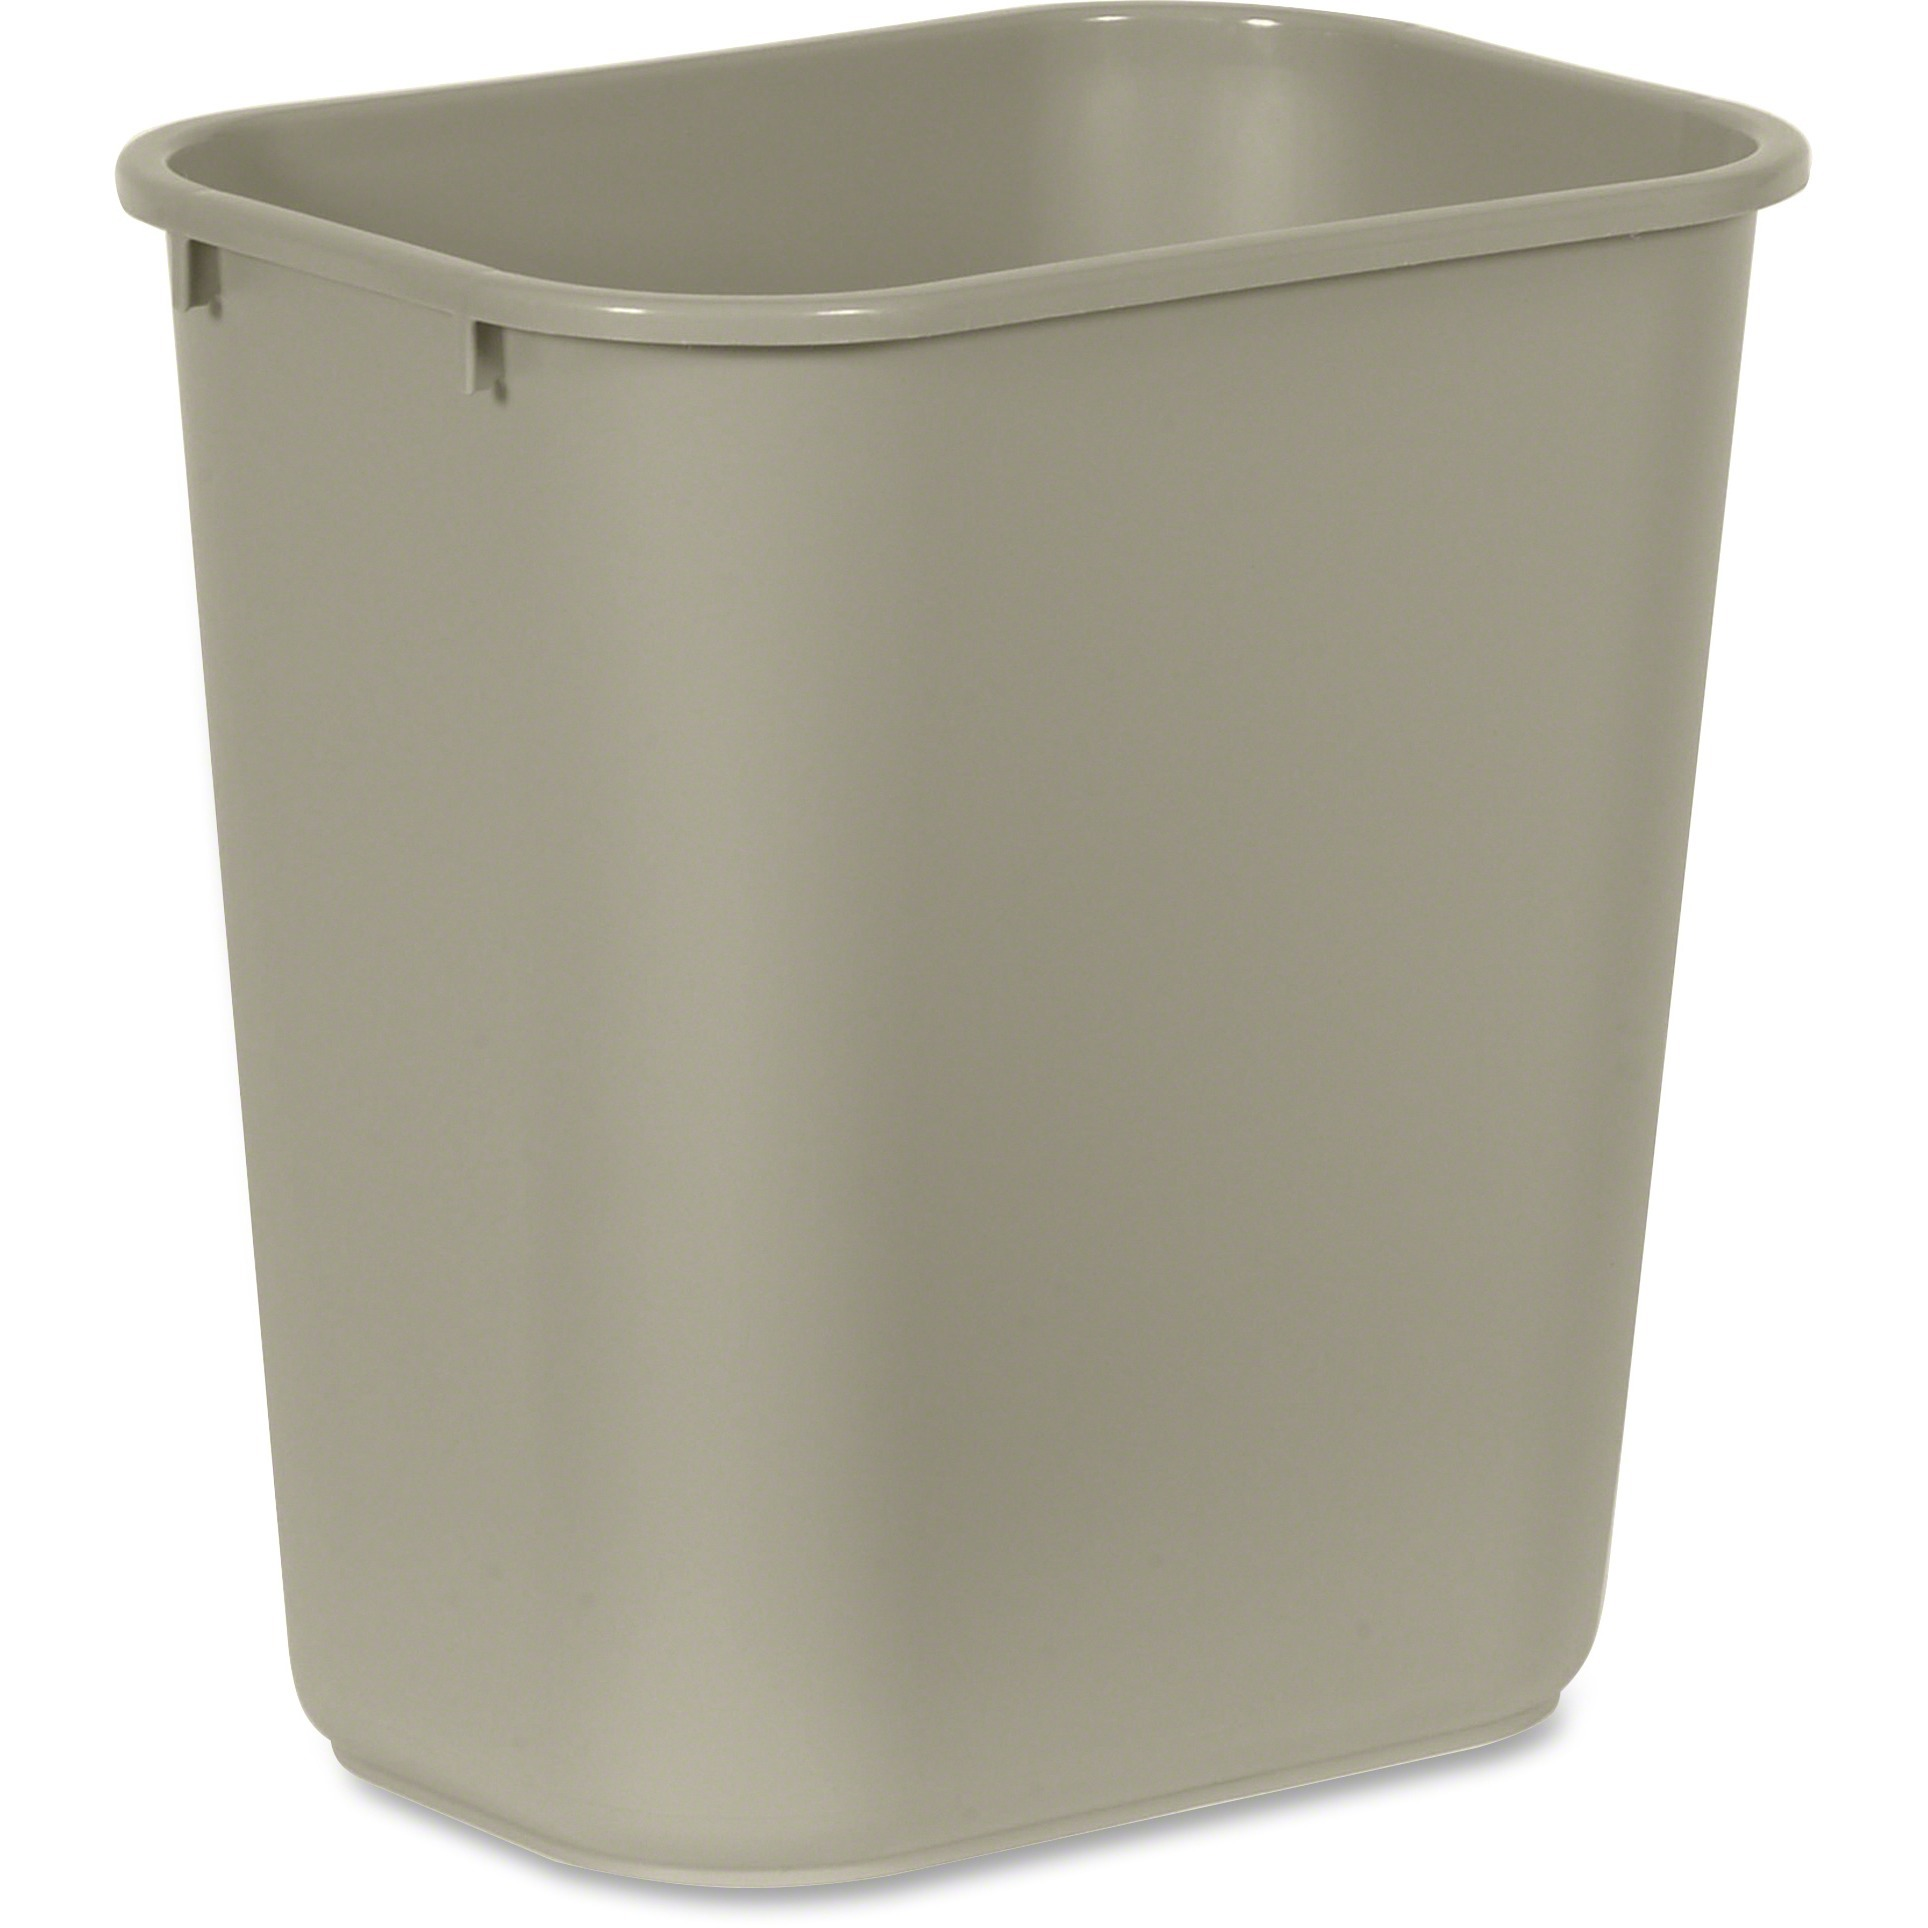 Rubbermaid Standard Series Wastebaskets, Beige